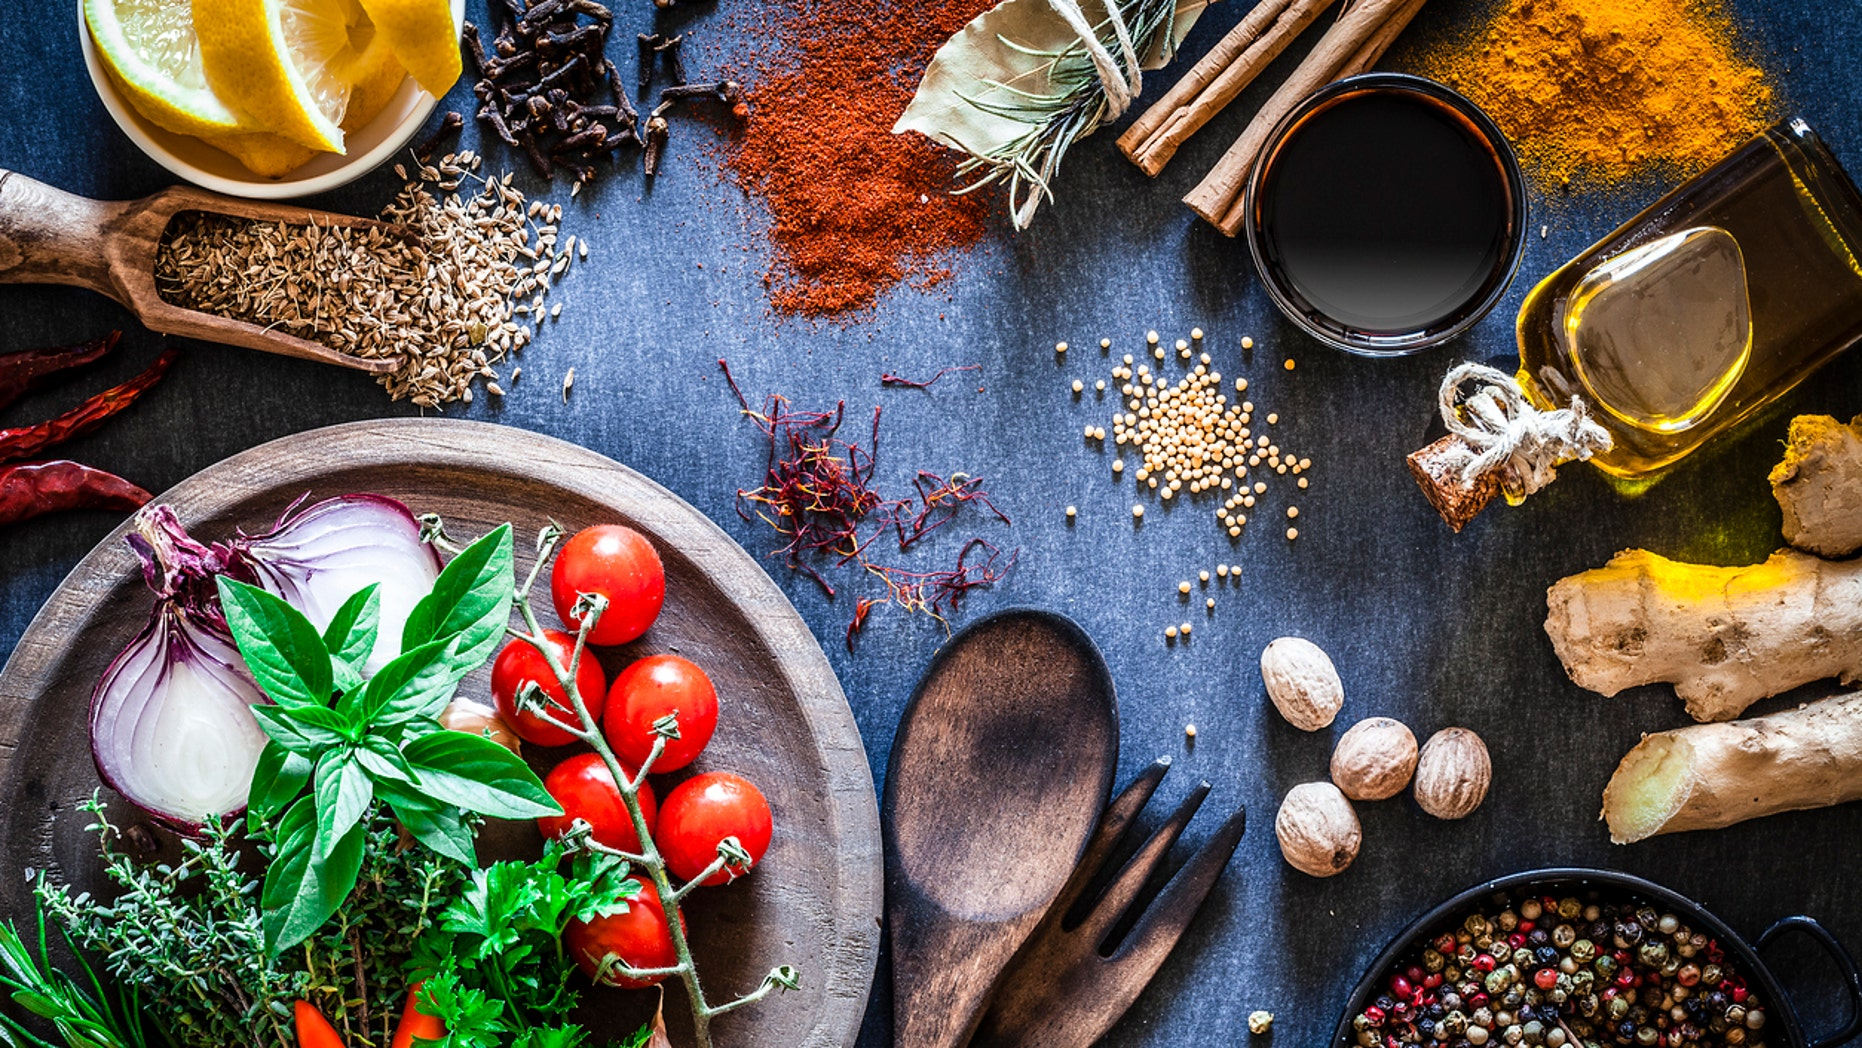 Spices might help convince high school students to load up their plate with vegetables during lunchtime in the cafeteria, a small study in rural Pennsylvania suggests.